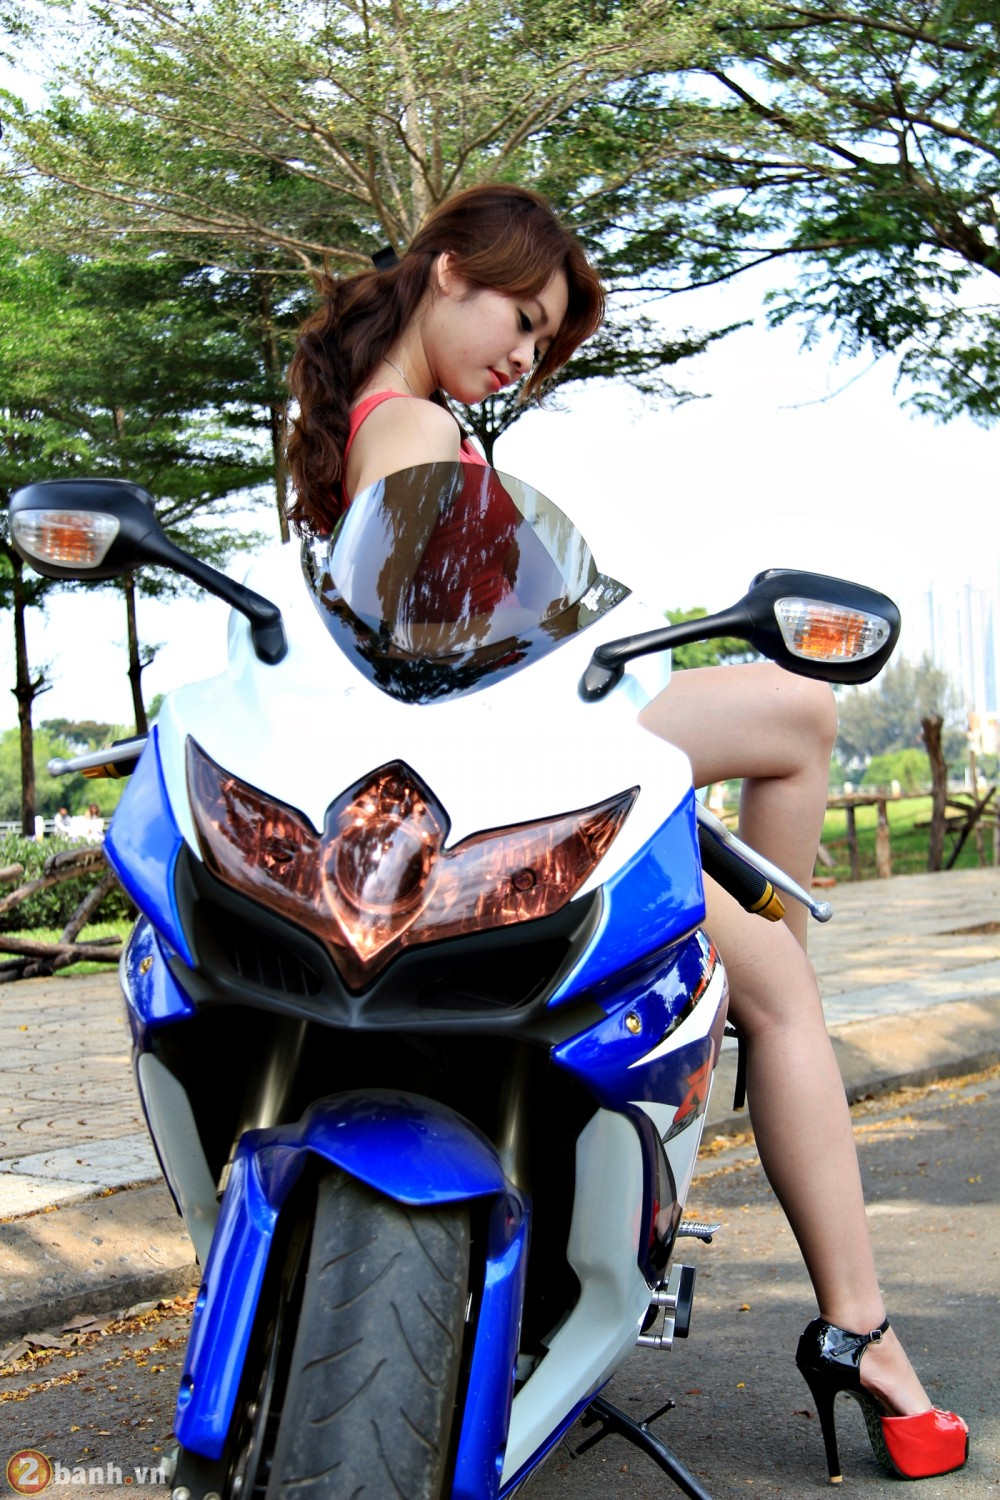 Suzuki GSX 600 do body cung chan dai - 11